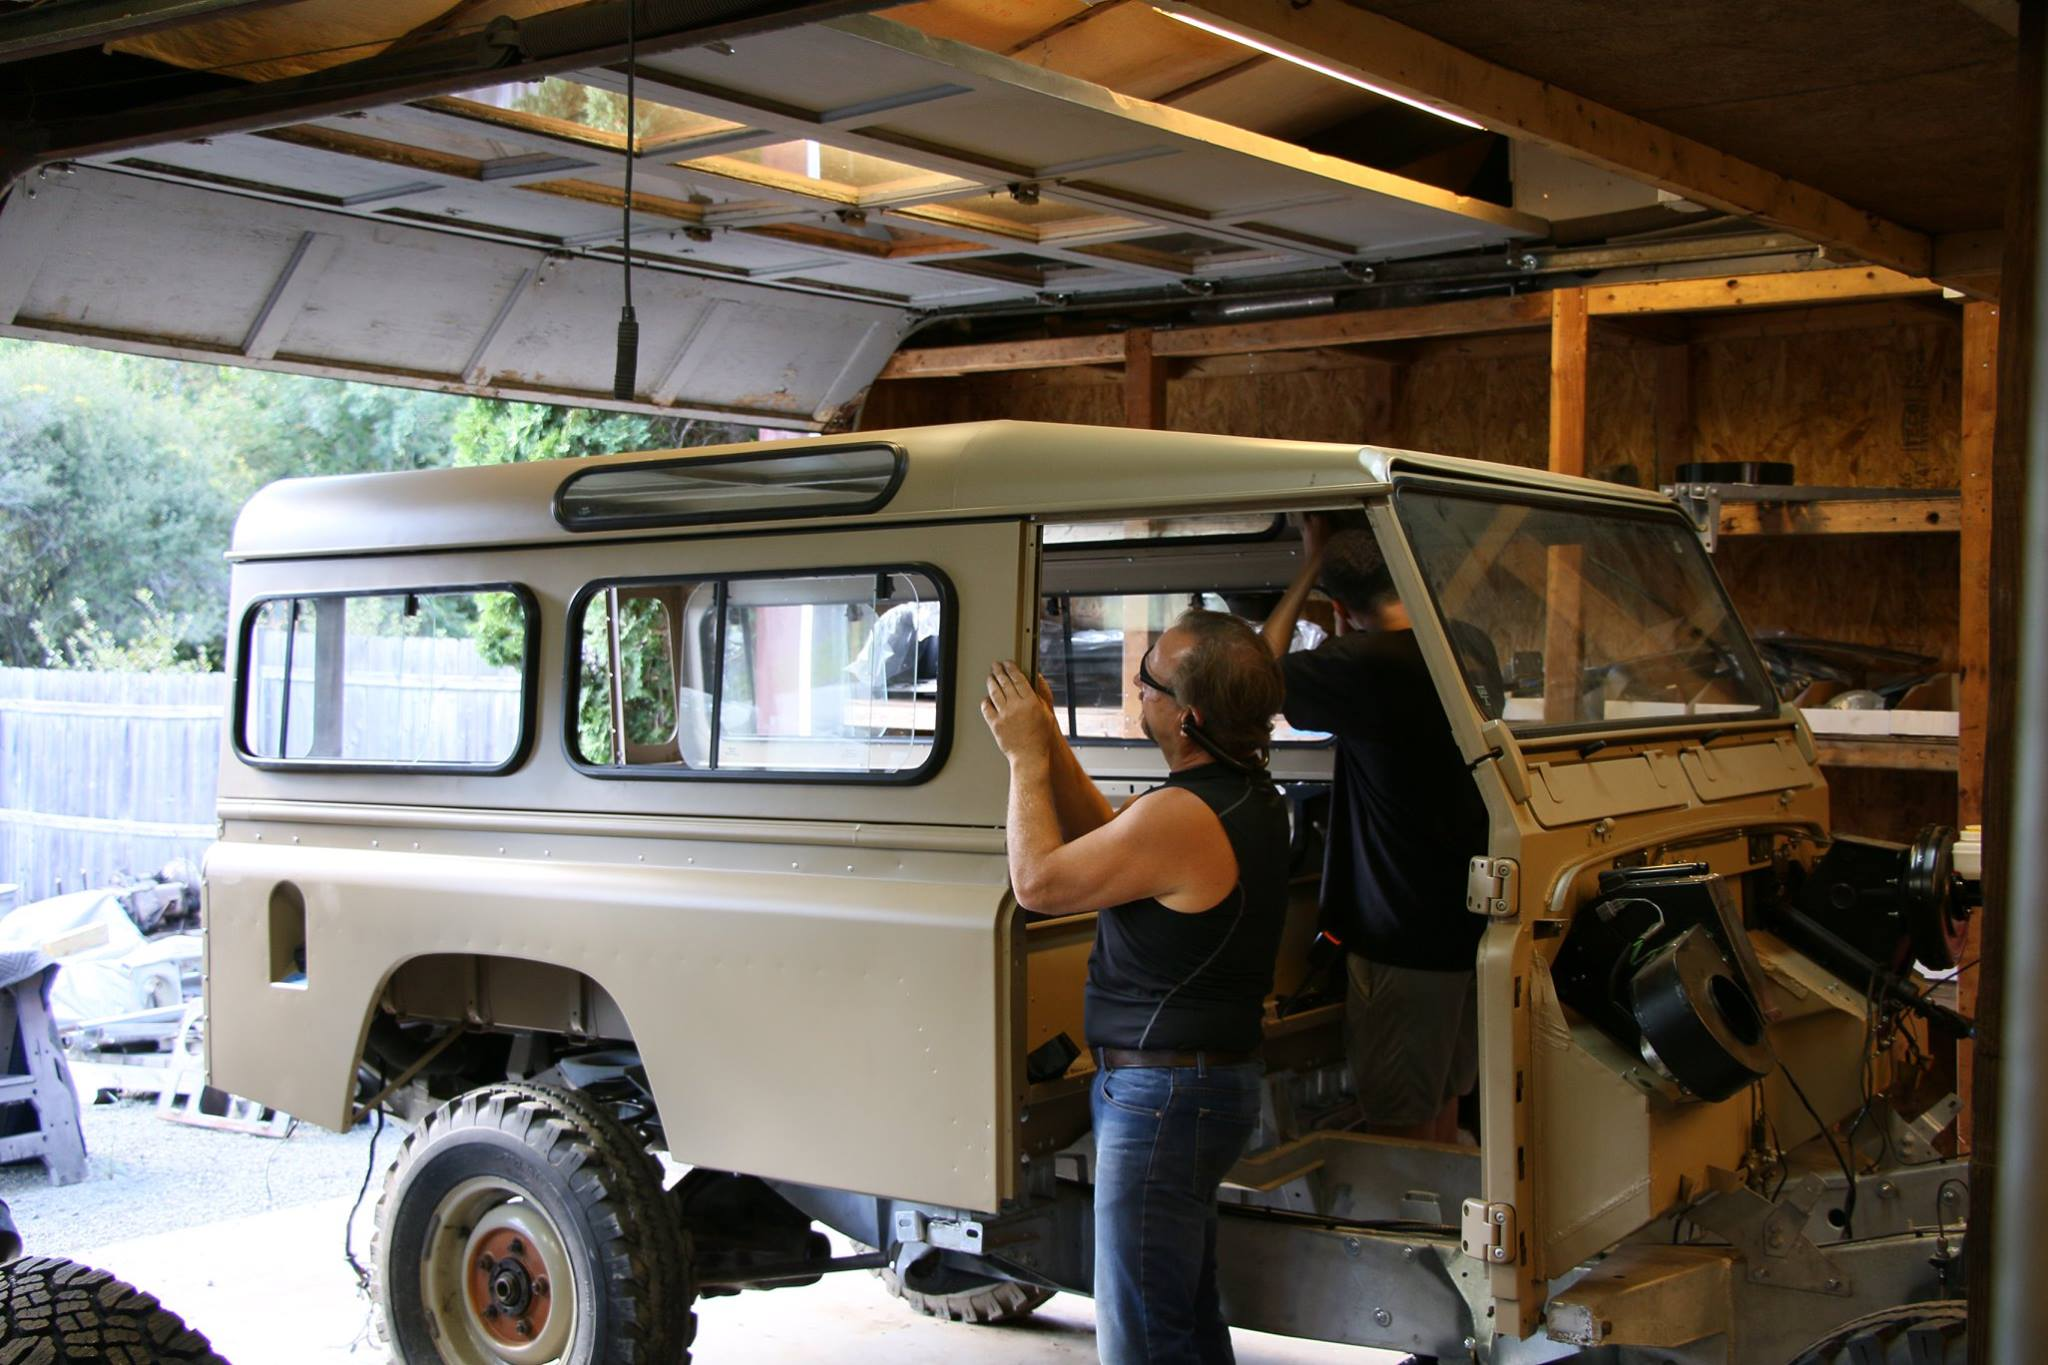 New side panels with genuine Land Rover sliding windows.